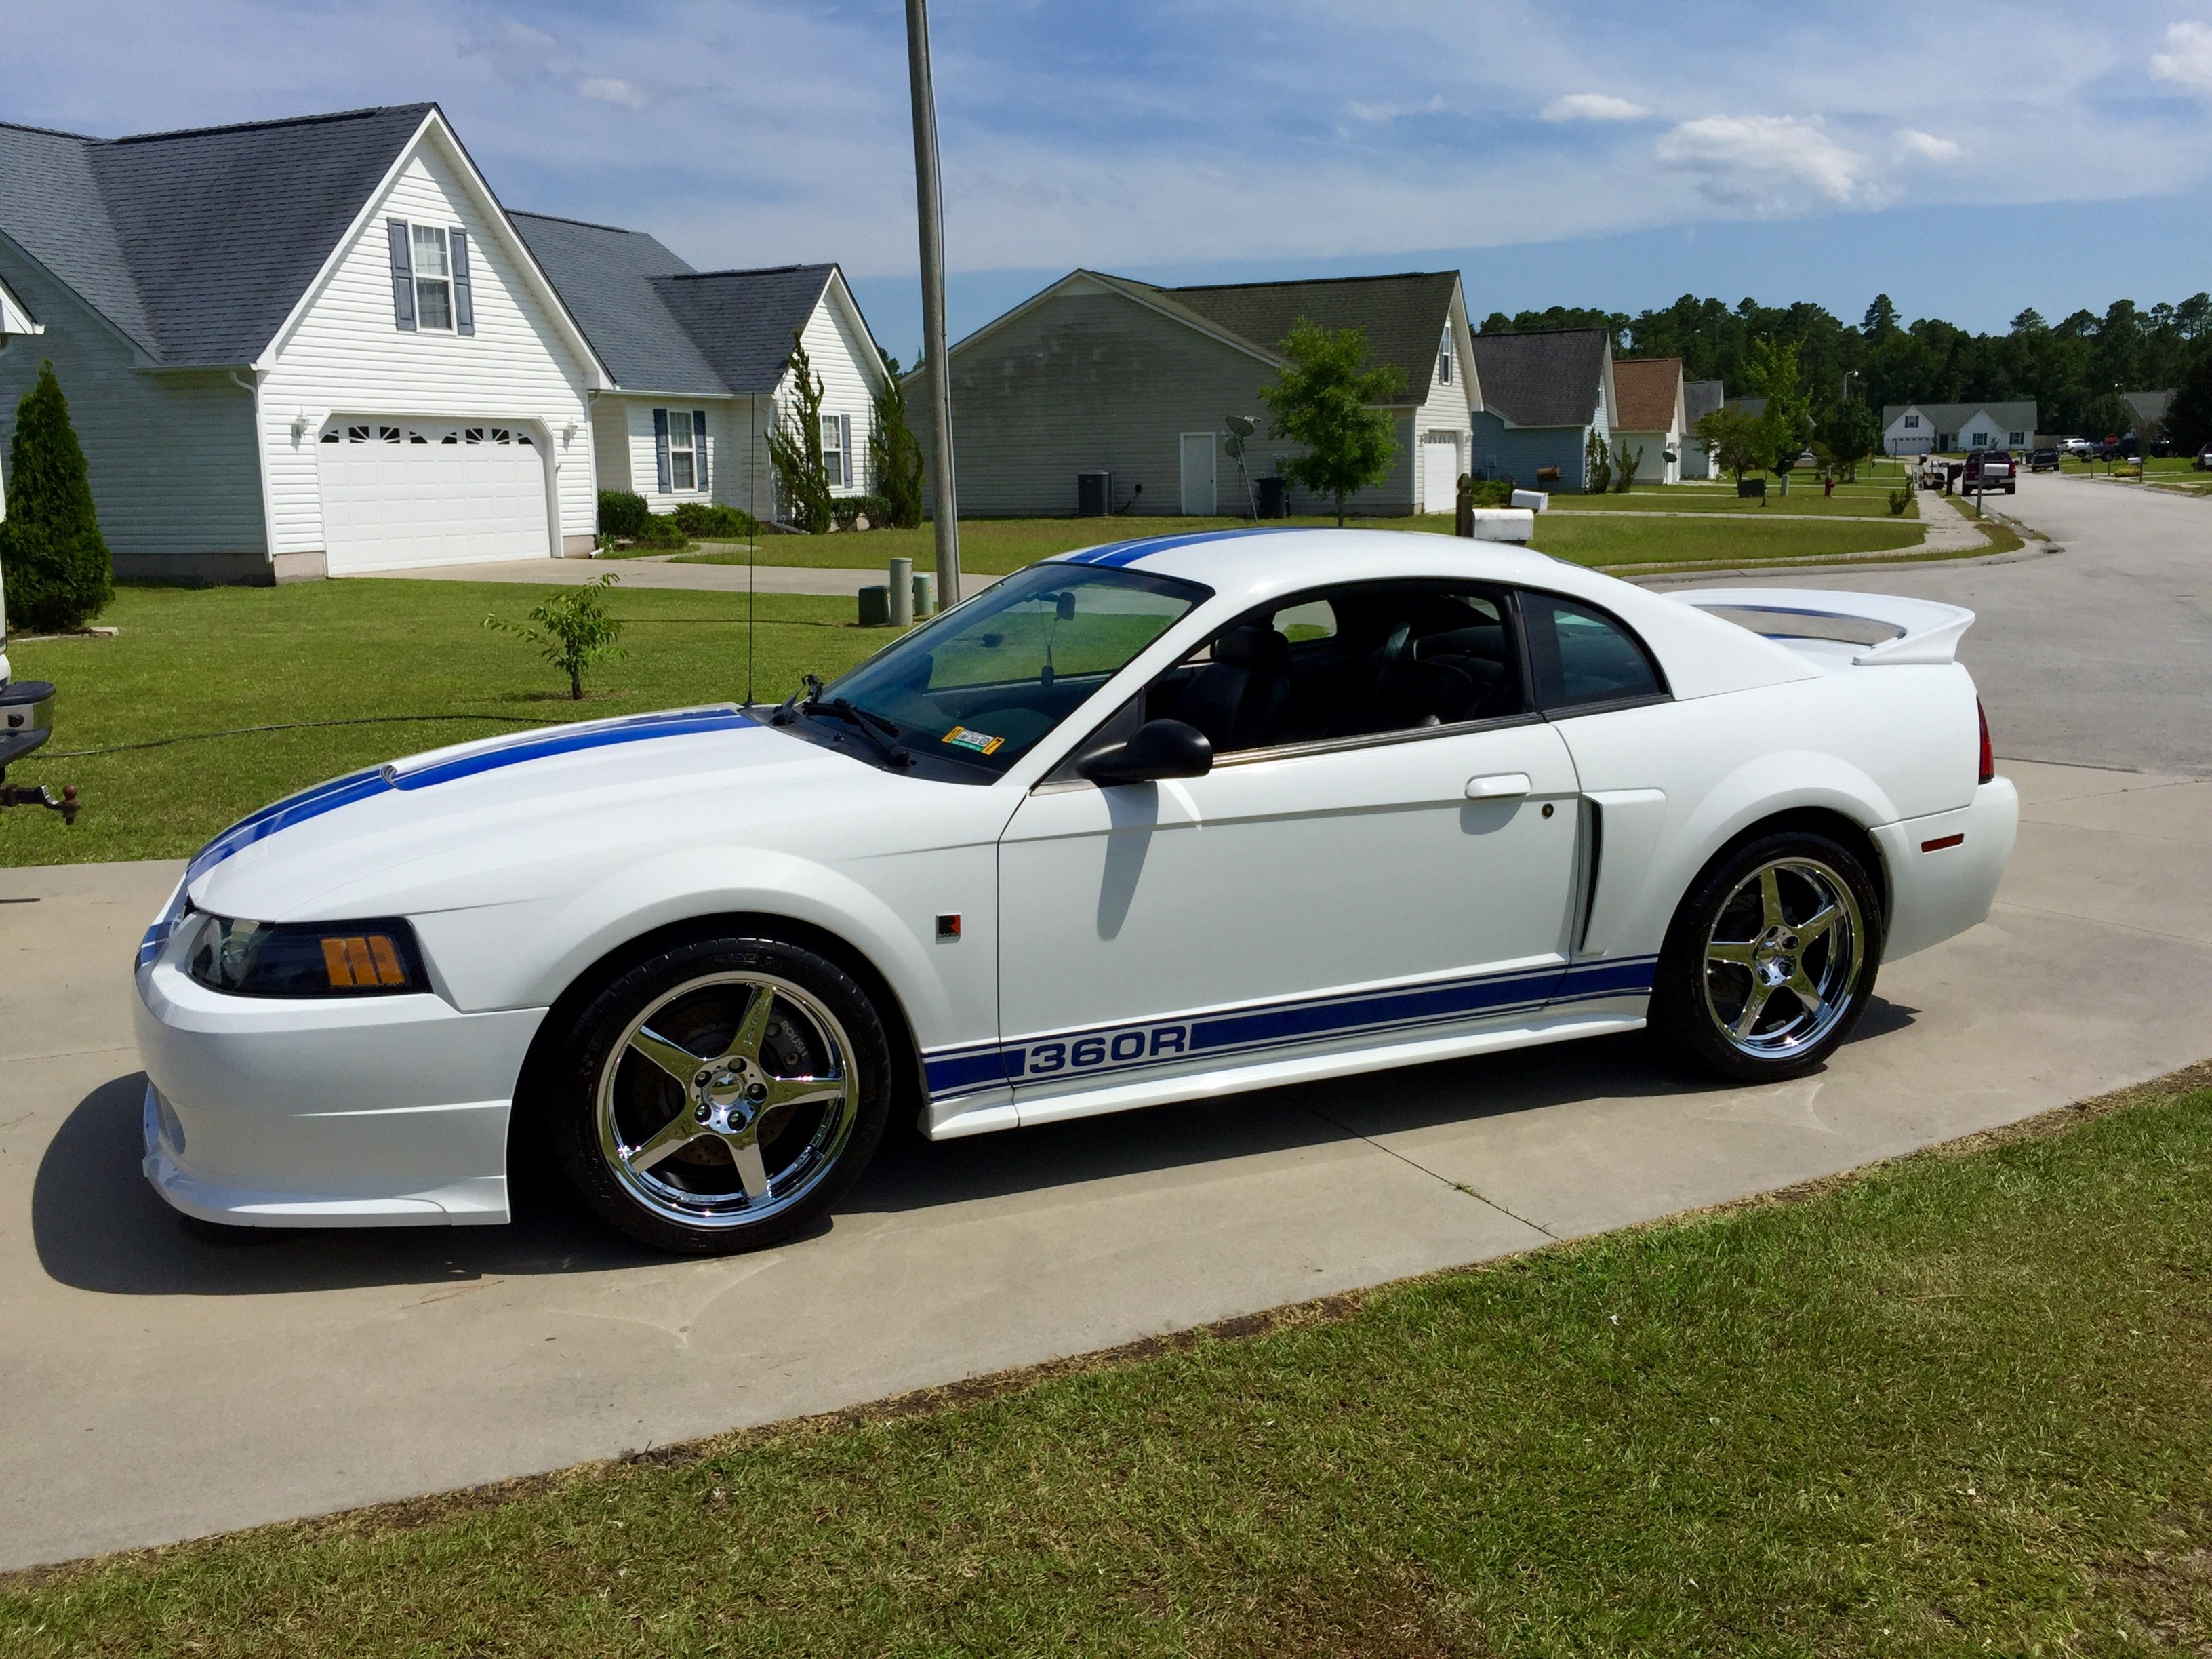 Click image for larger version  Name:Mustang 4.jpg Views:97 Size:1.36 MB ID:205820